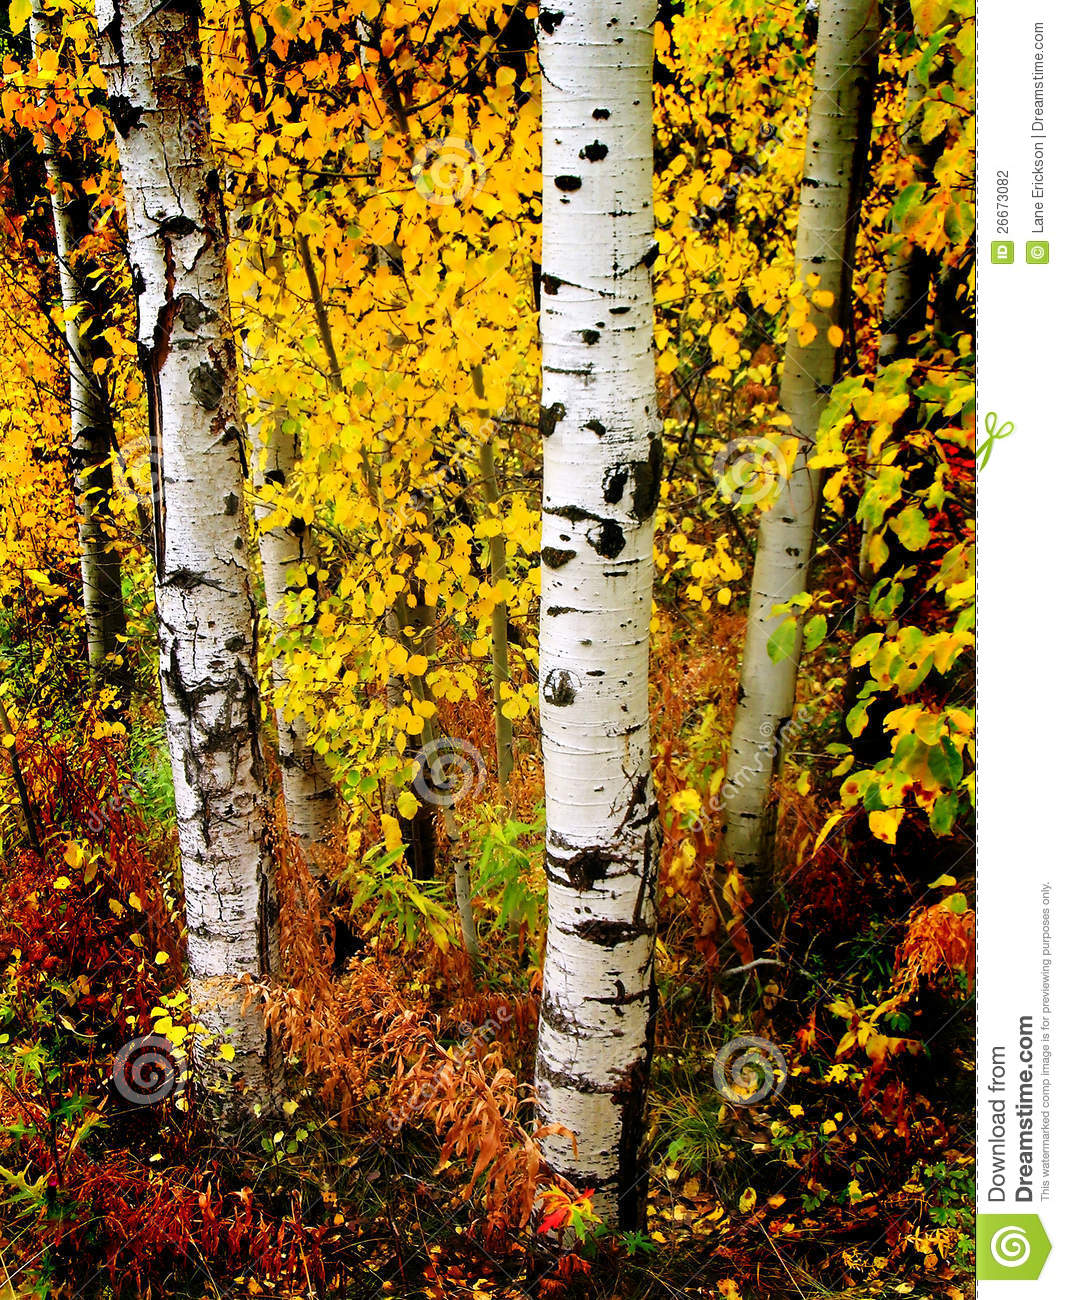 Detail of several aspen birch trees with golden yellow leaves.